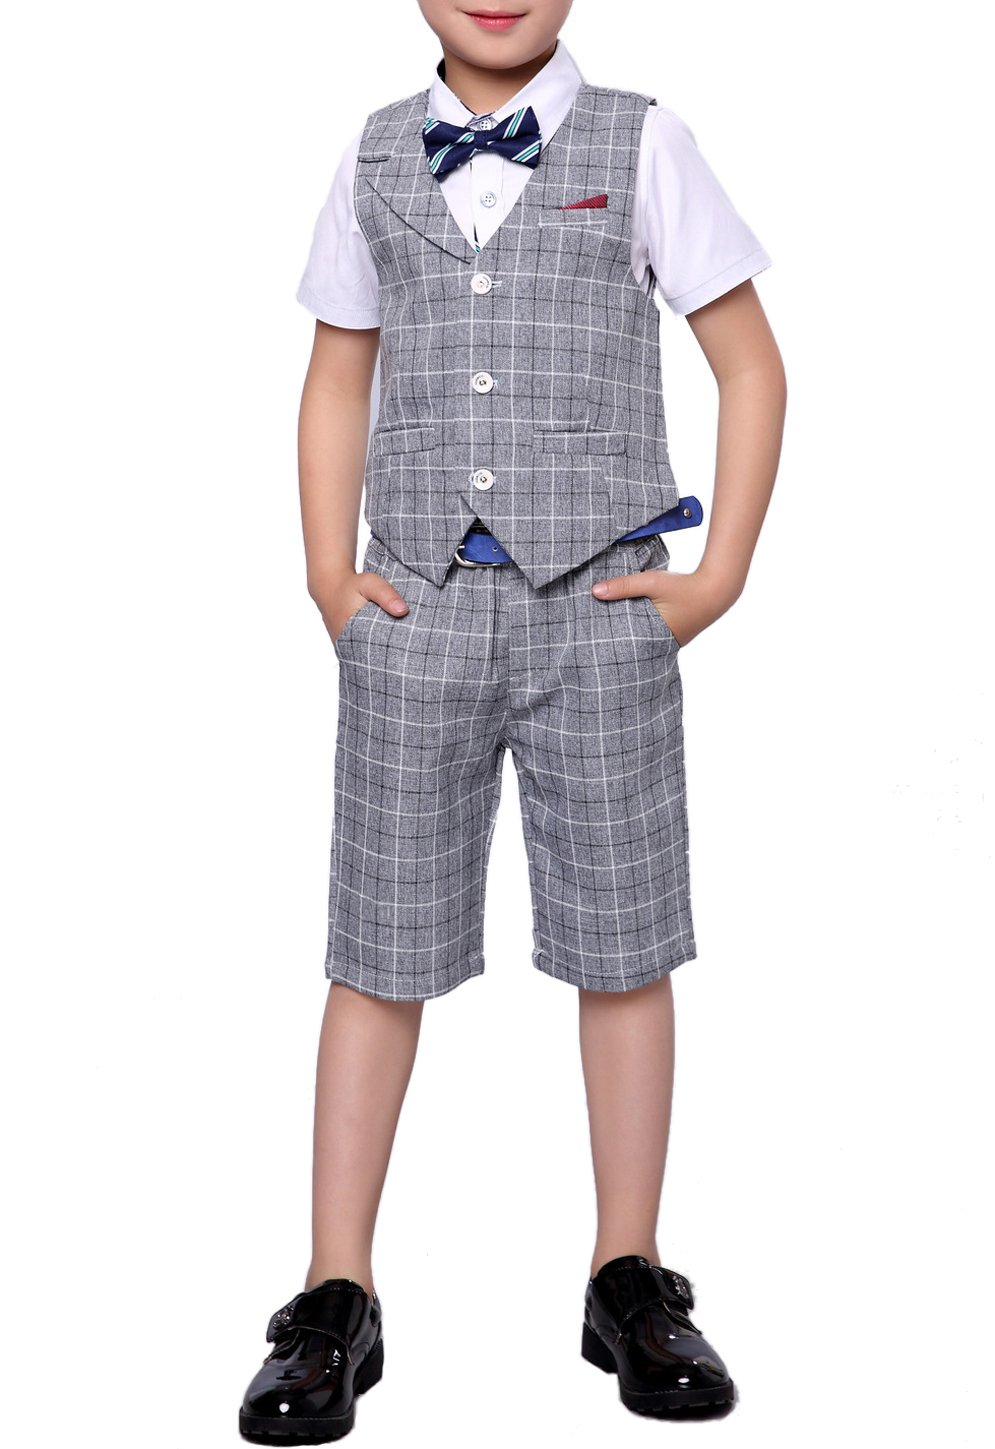 Boys Summer Suit Set 3 Pieces Shirt Vest and Shorts Set Blue Gray and Pink (6, Gray)